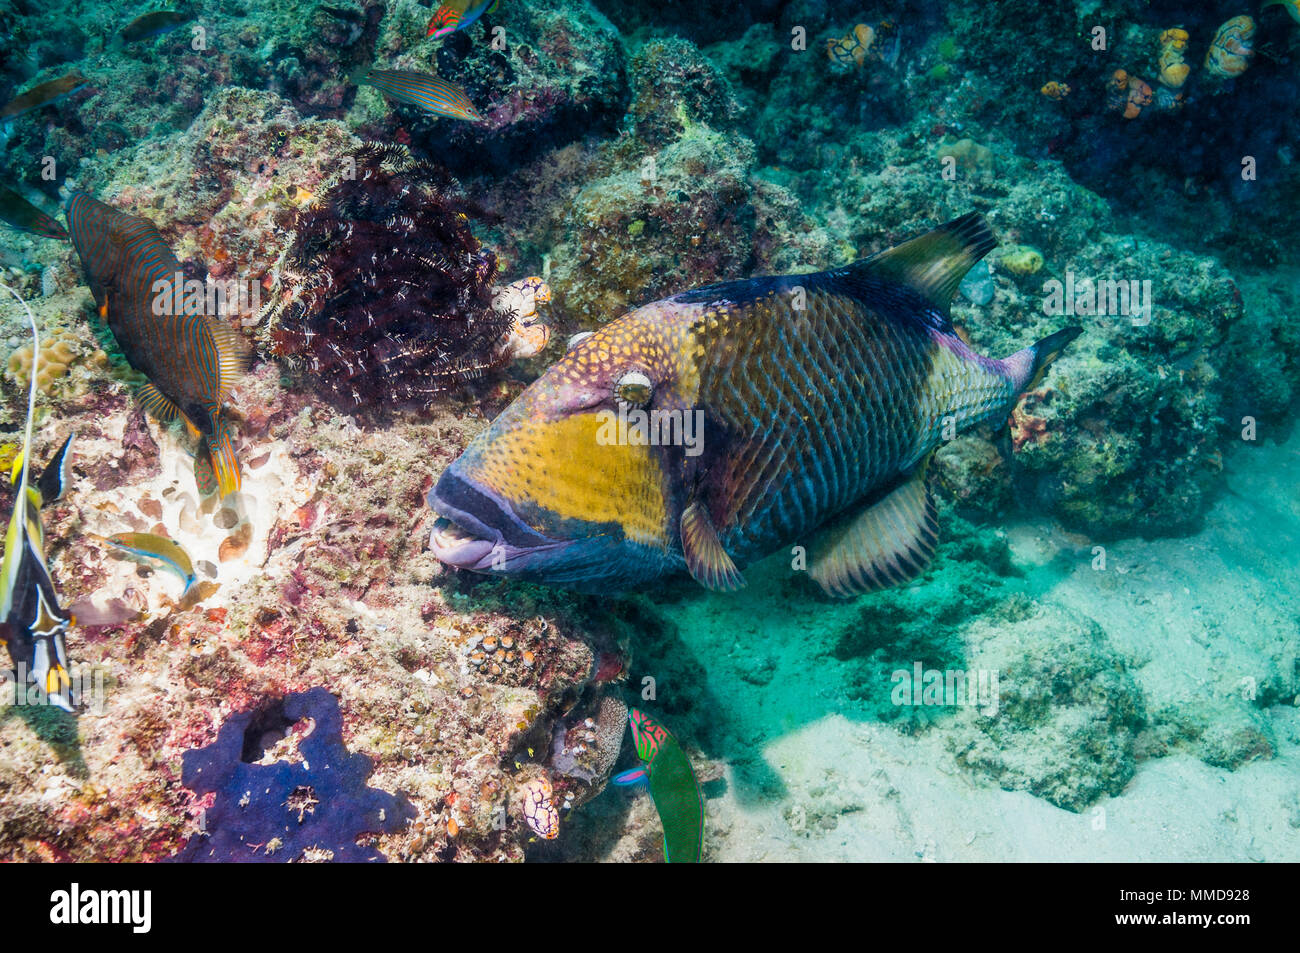 Titan triggerfish [Balistoides viridescens] cutting up coral rock, looking for prey.  The fish most feared by scuba divers because of its extremely ag - Stock Image